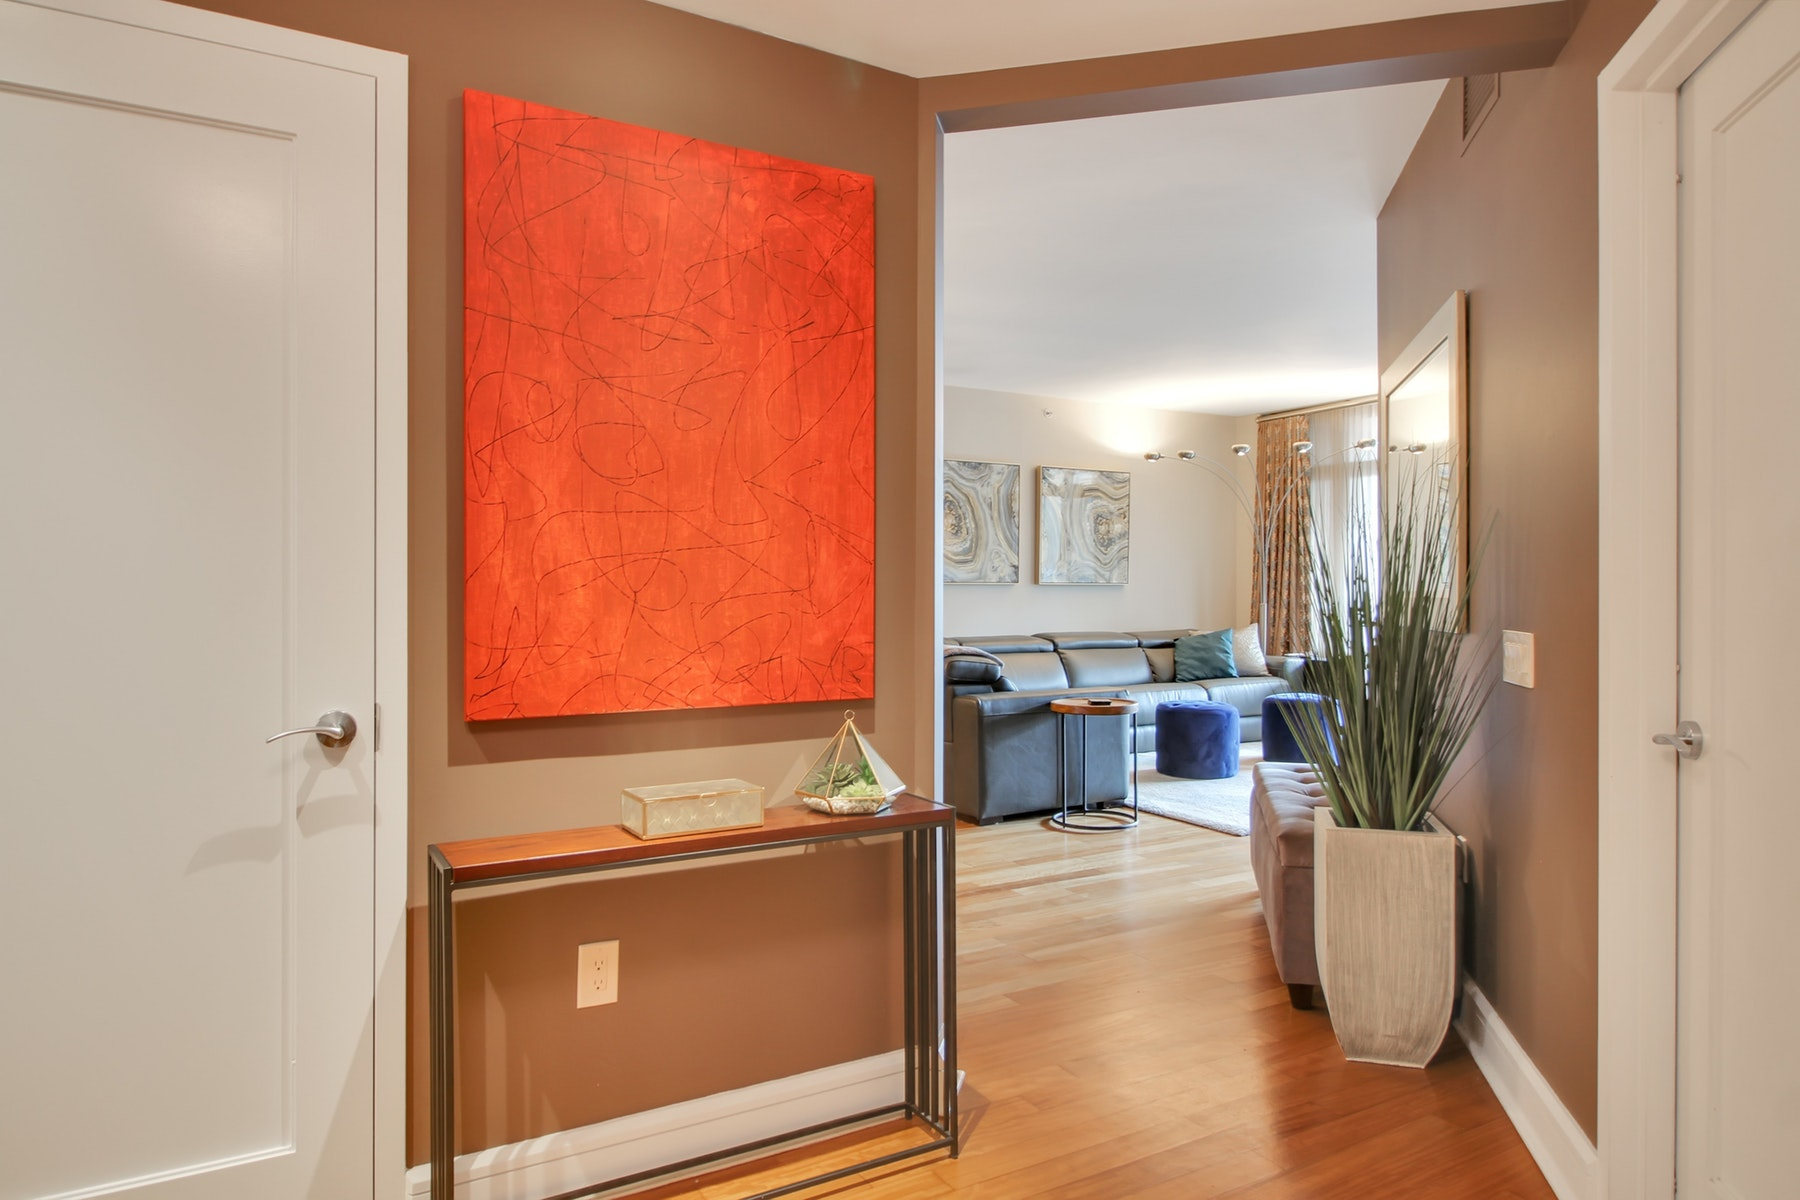 Condominium for Sale at The Watermark 8100 River Road #301, North Bergen, New Jersey 07047 United States